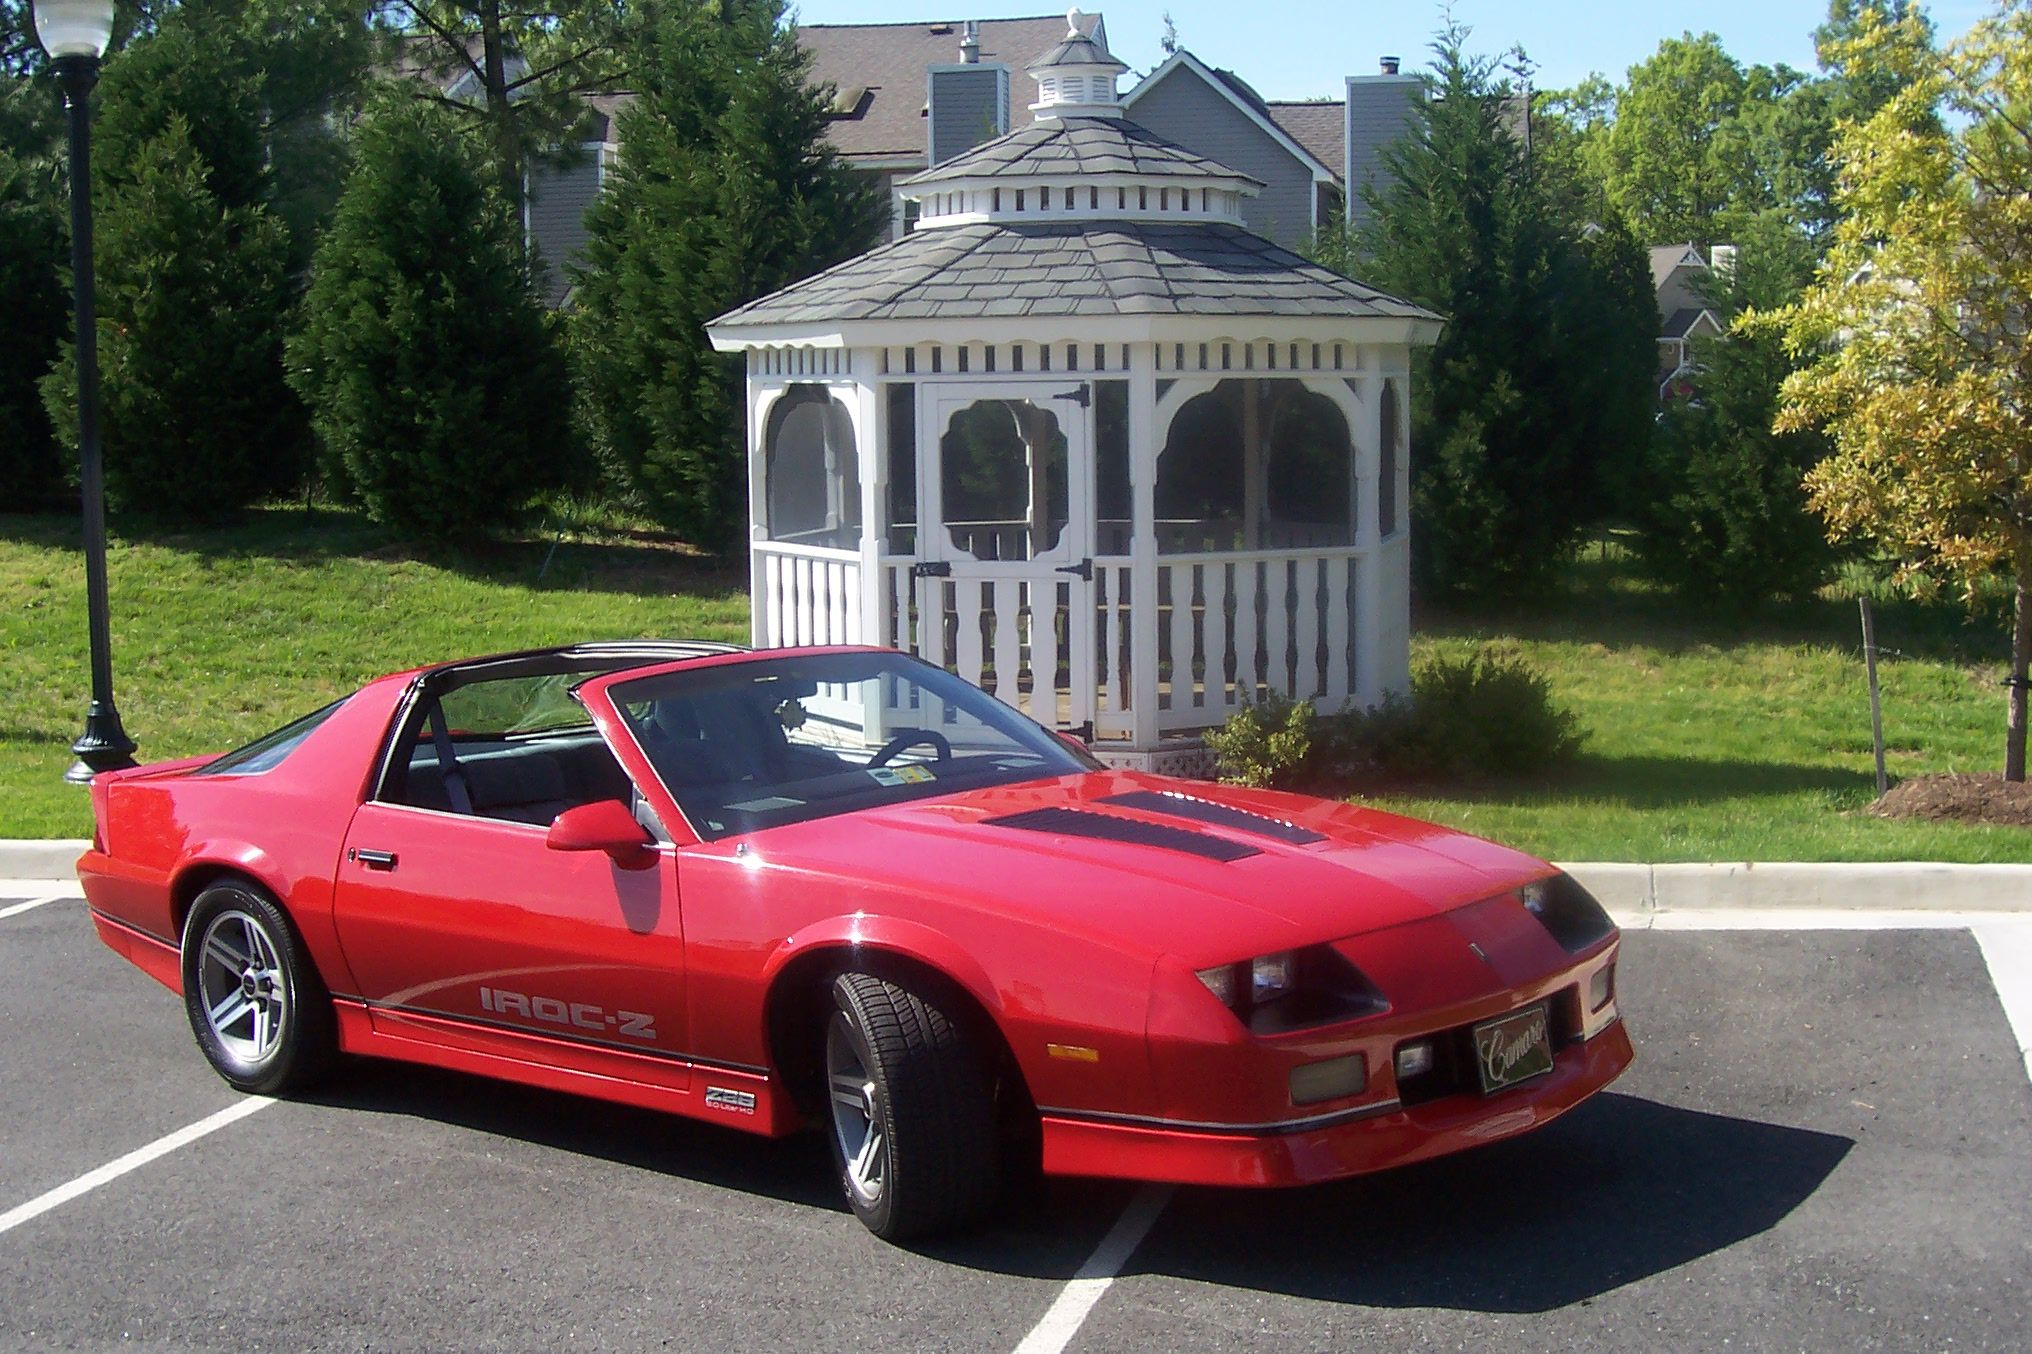 85 Chevy Camaro IROC-Z with black wheels and tinted windows | 16th ...